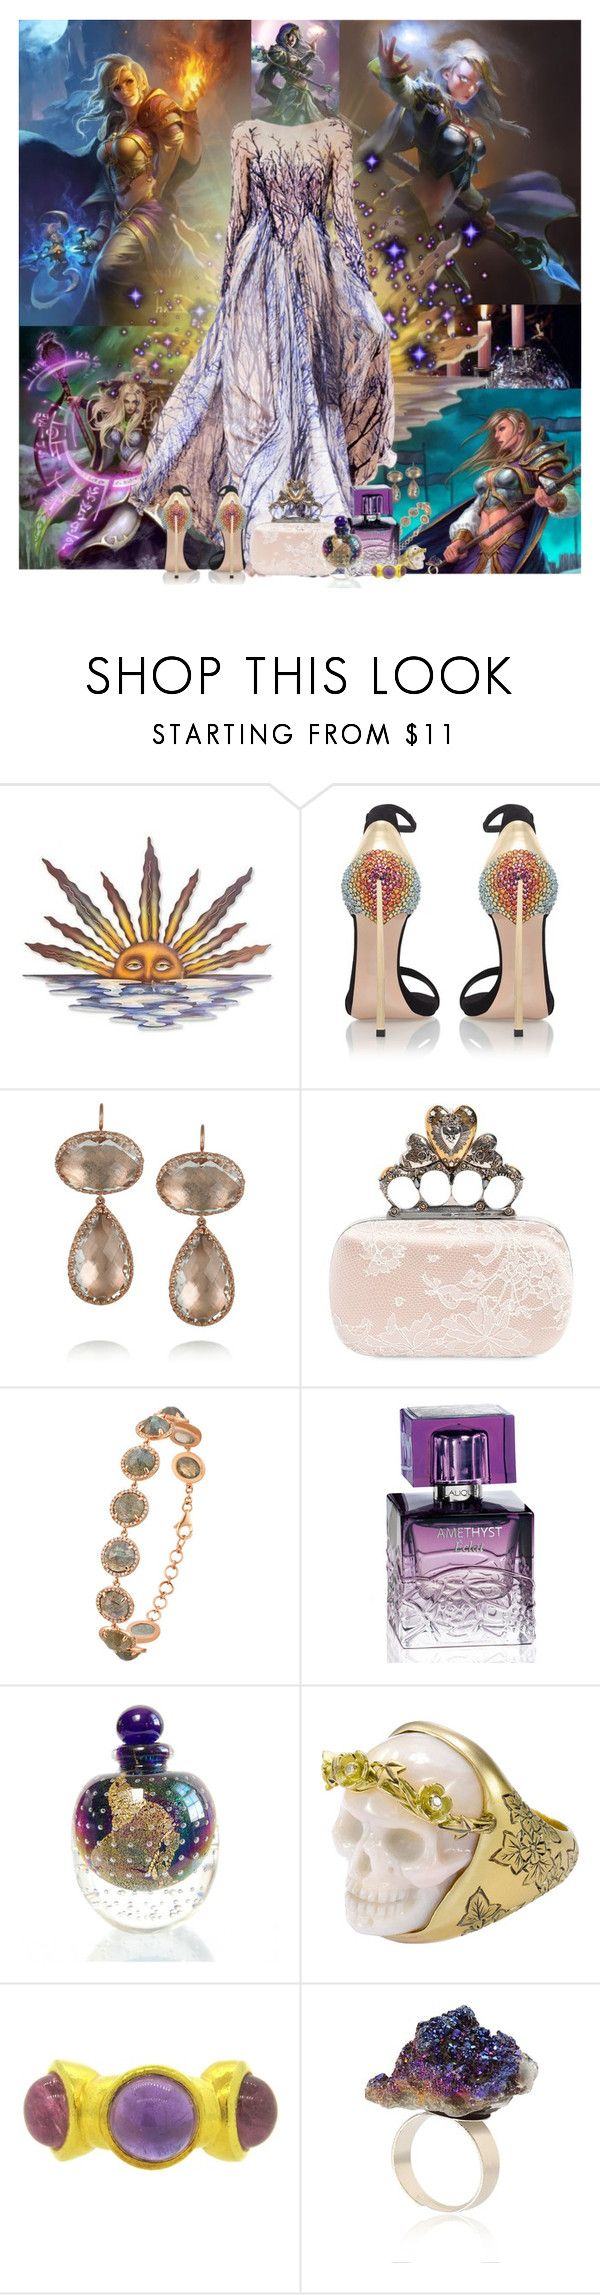 """""""WoW Jaina Proudmoore's Dress"""" by lady-redrise ❤ liked on Polyvore featuring NOVICA, Zuhair Murad, Casadei, Larkspur & Hawk, Alexander McQueen, Majolie Collections, Lalique and Lalaounis"""